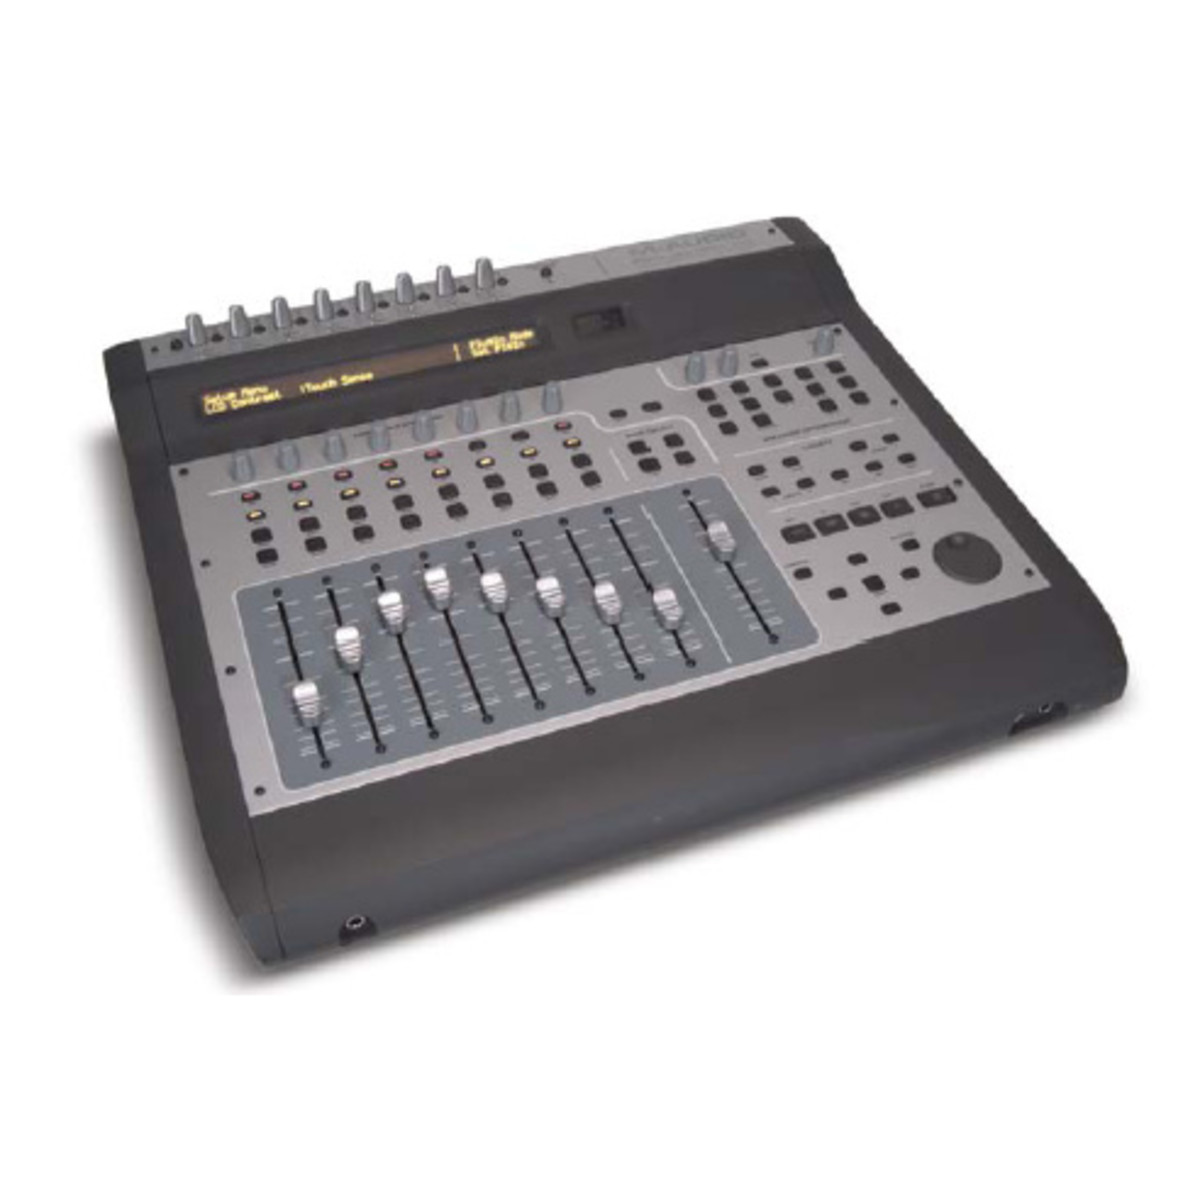 m audio project mix View and download m-audio projectmix i/o user manual online control surface with motorized faders and 18 x 14 audio interface projectmix i/o recording equipment pdf manual download.